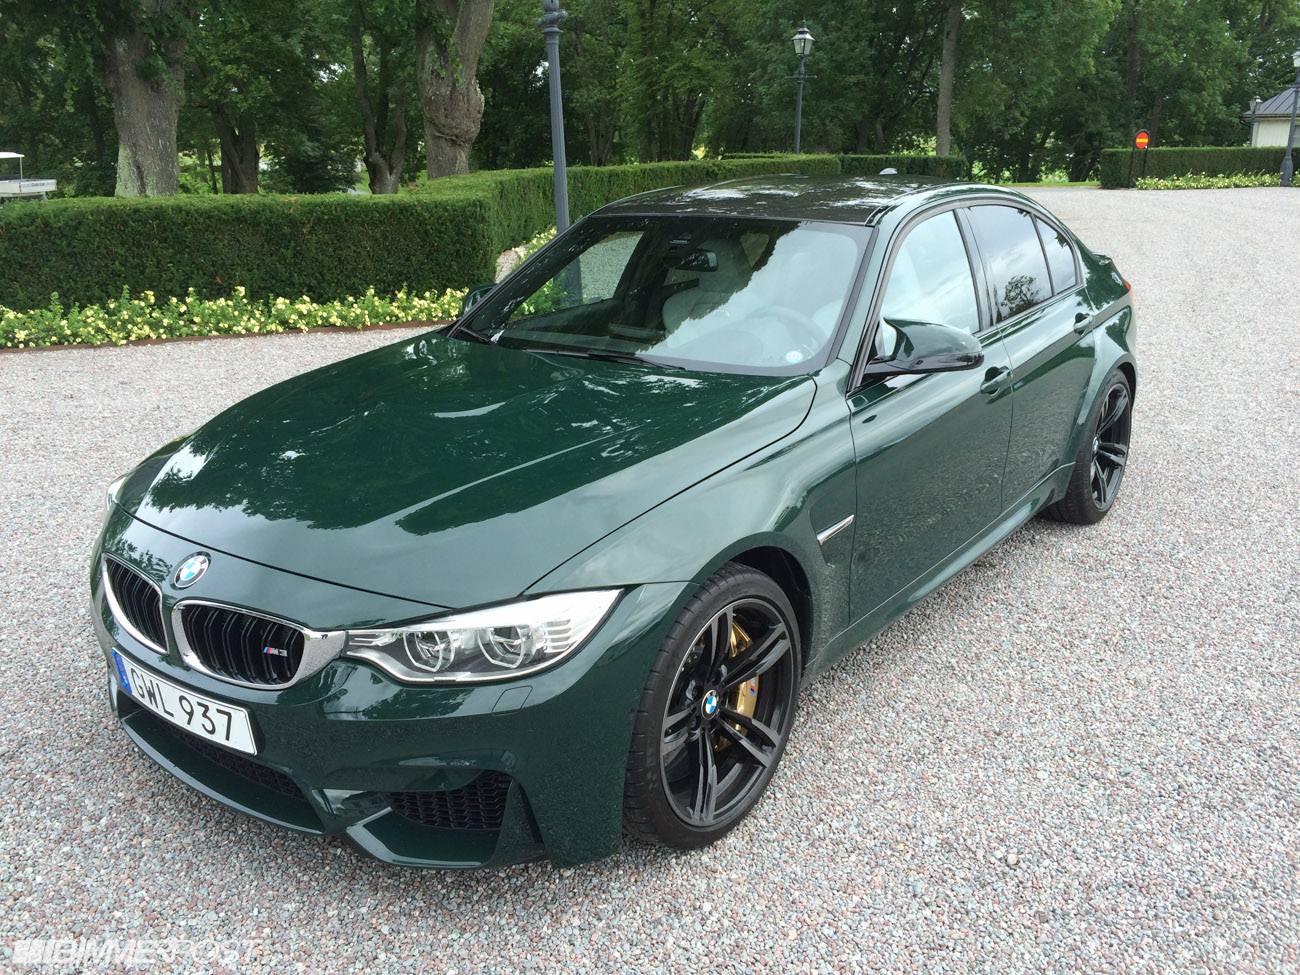 British Racing Green F80 M3 In Sweden